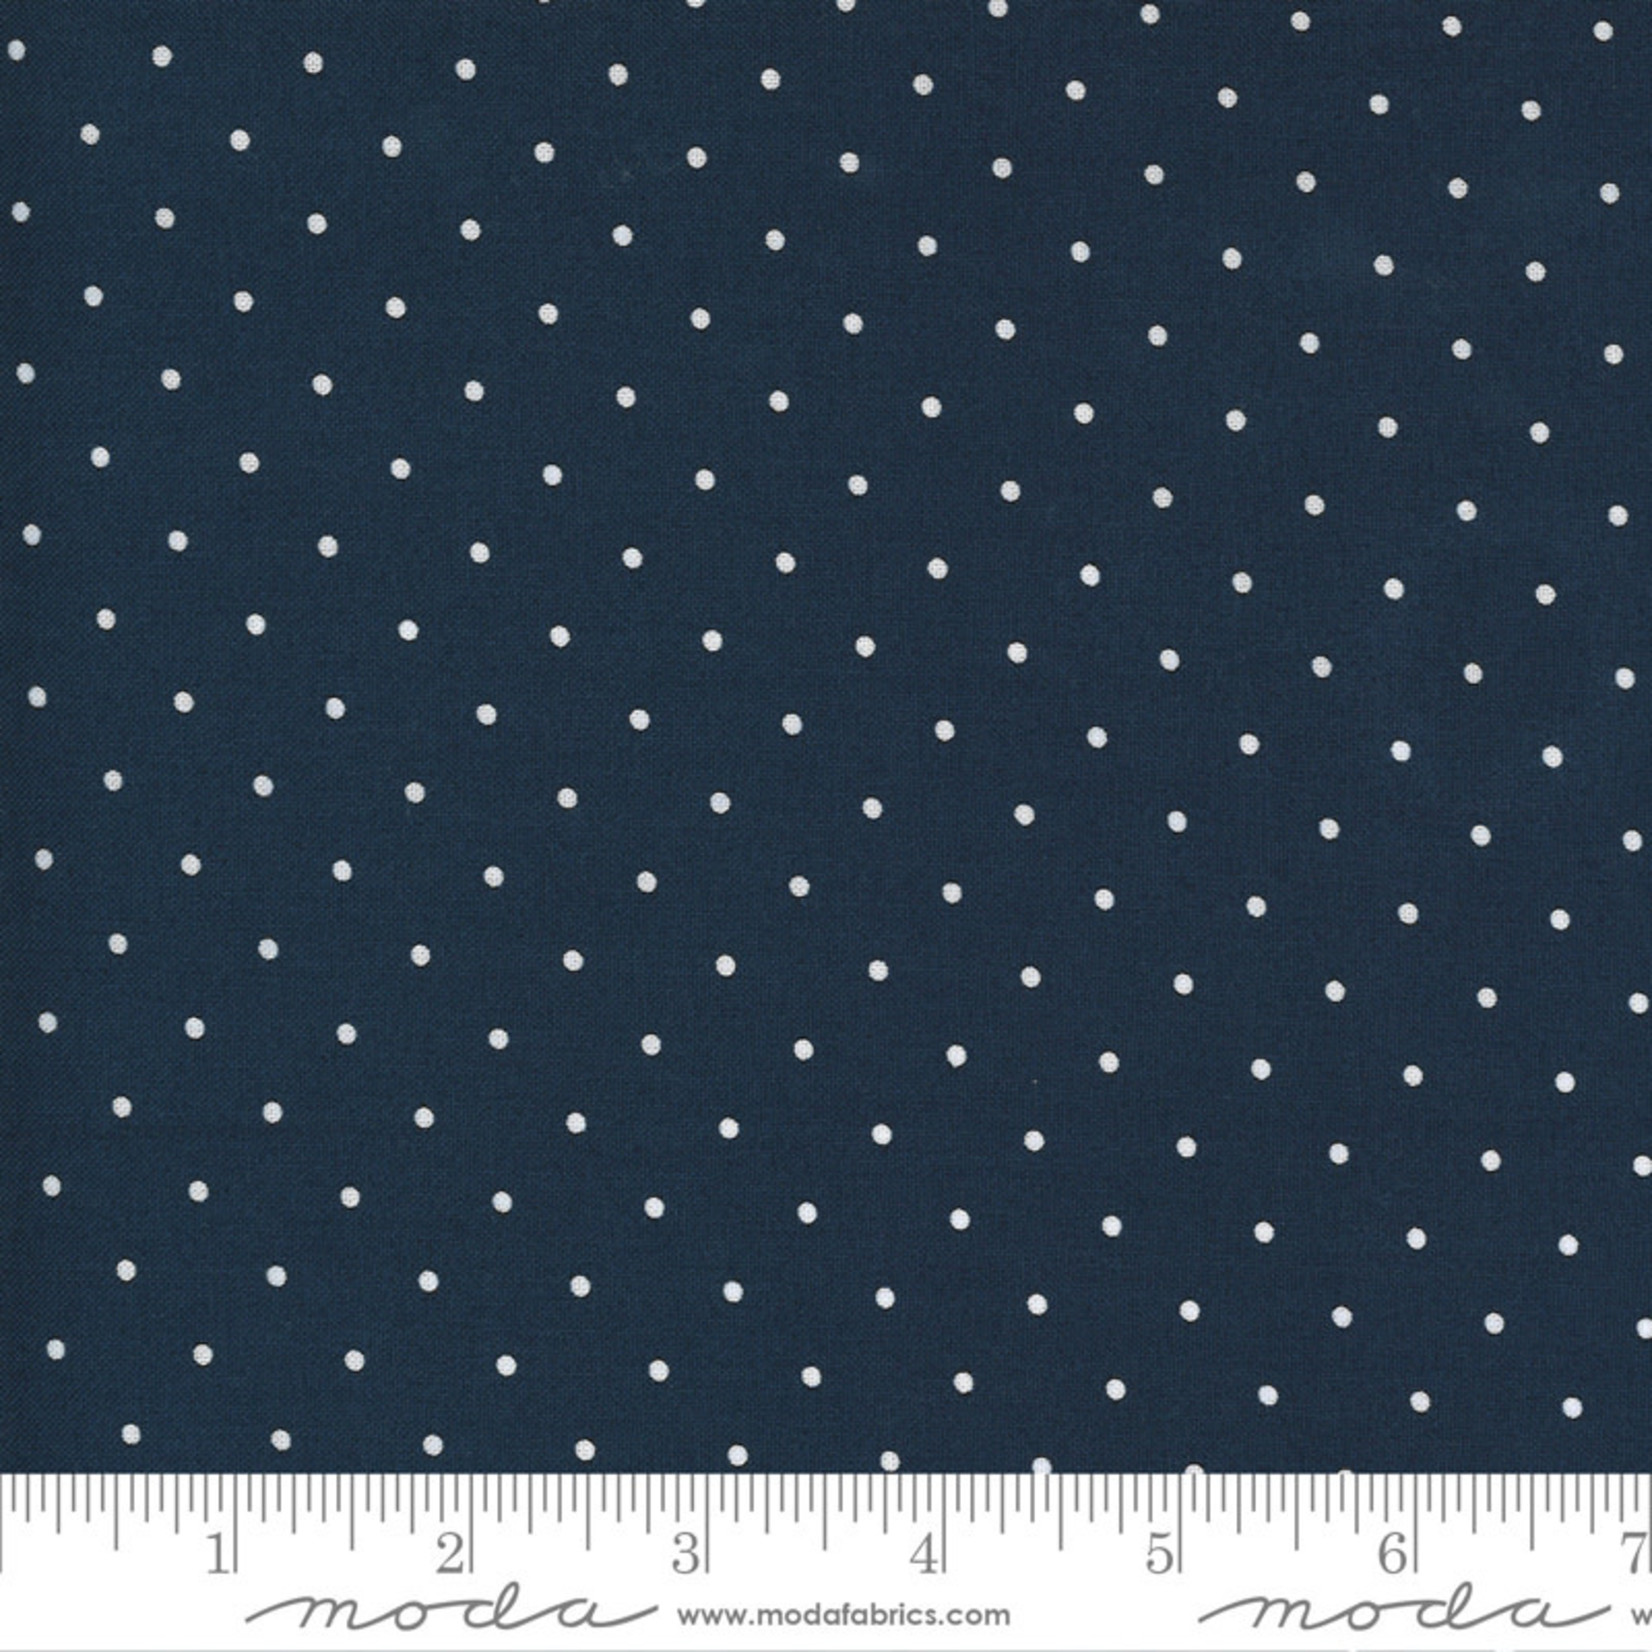 Bonnie & Camille Sunday Stroll, Sweet Dot, Navy 55226 15 $0.20 per cm or $20/m